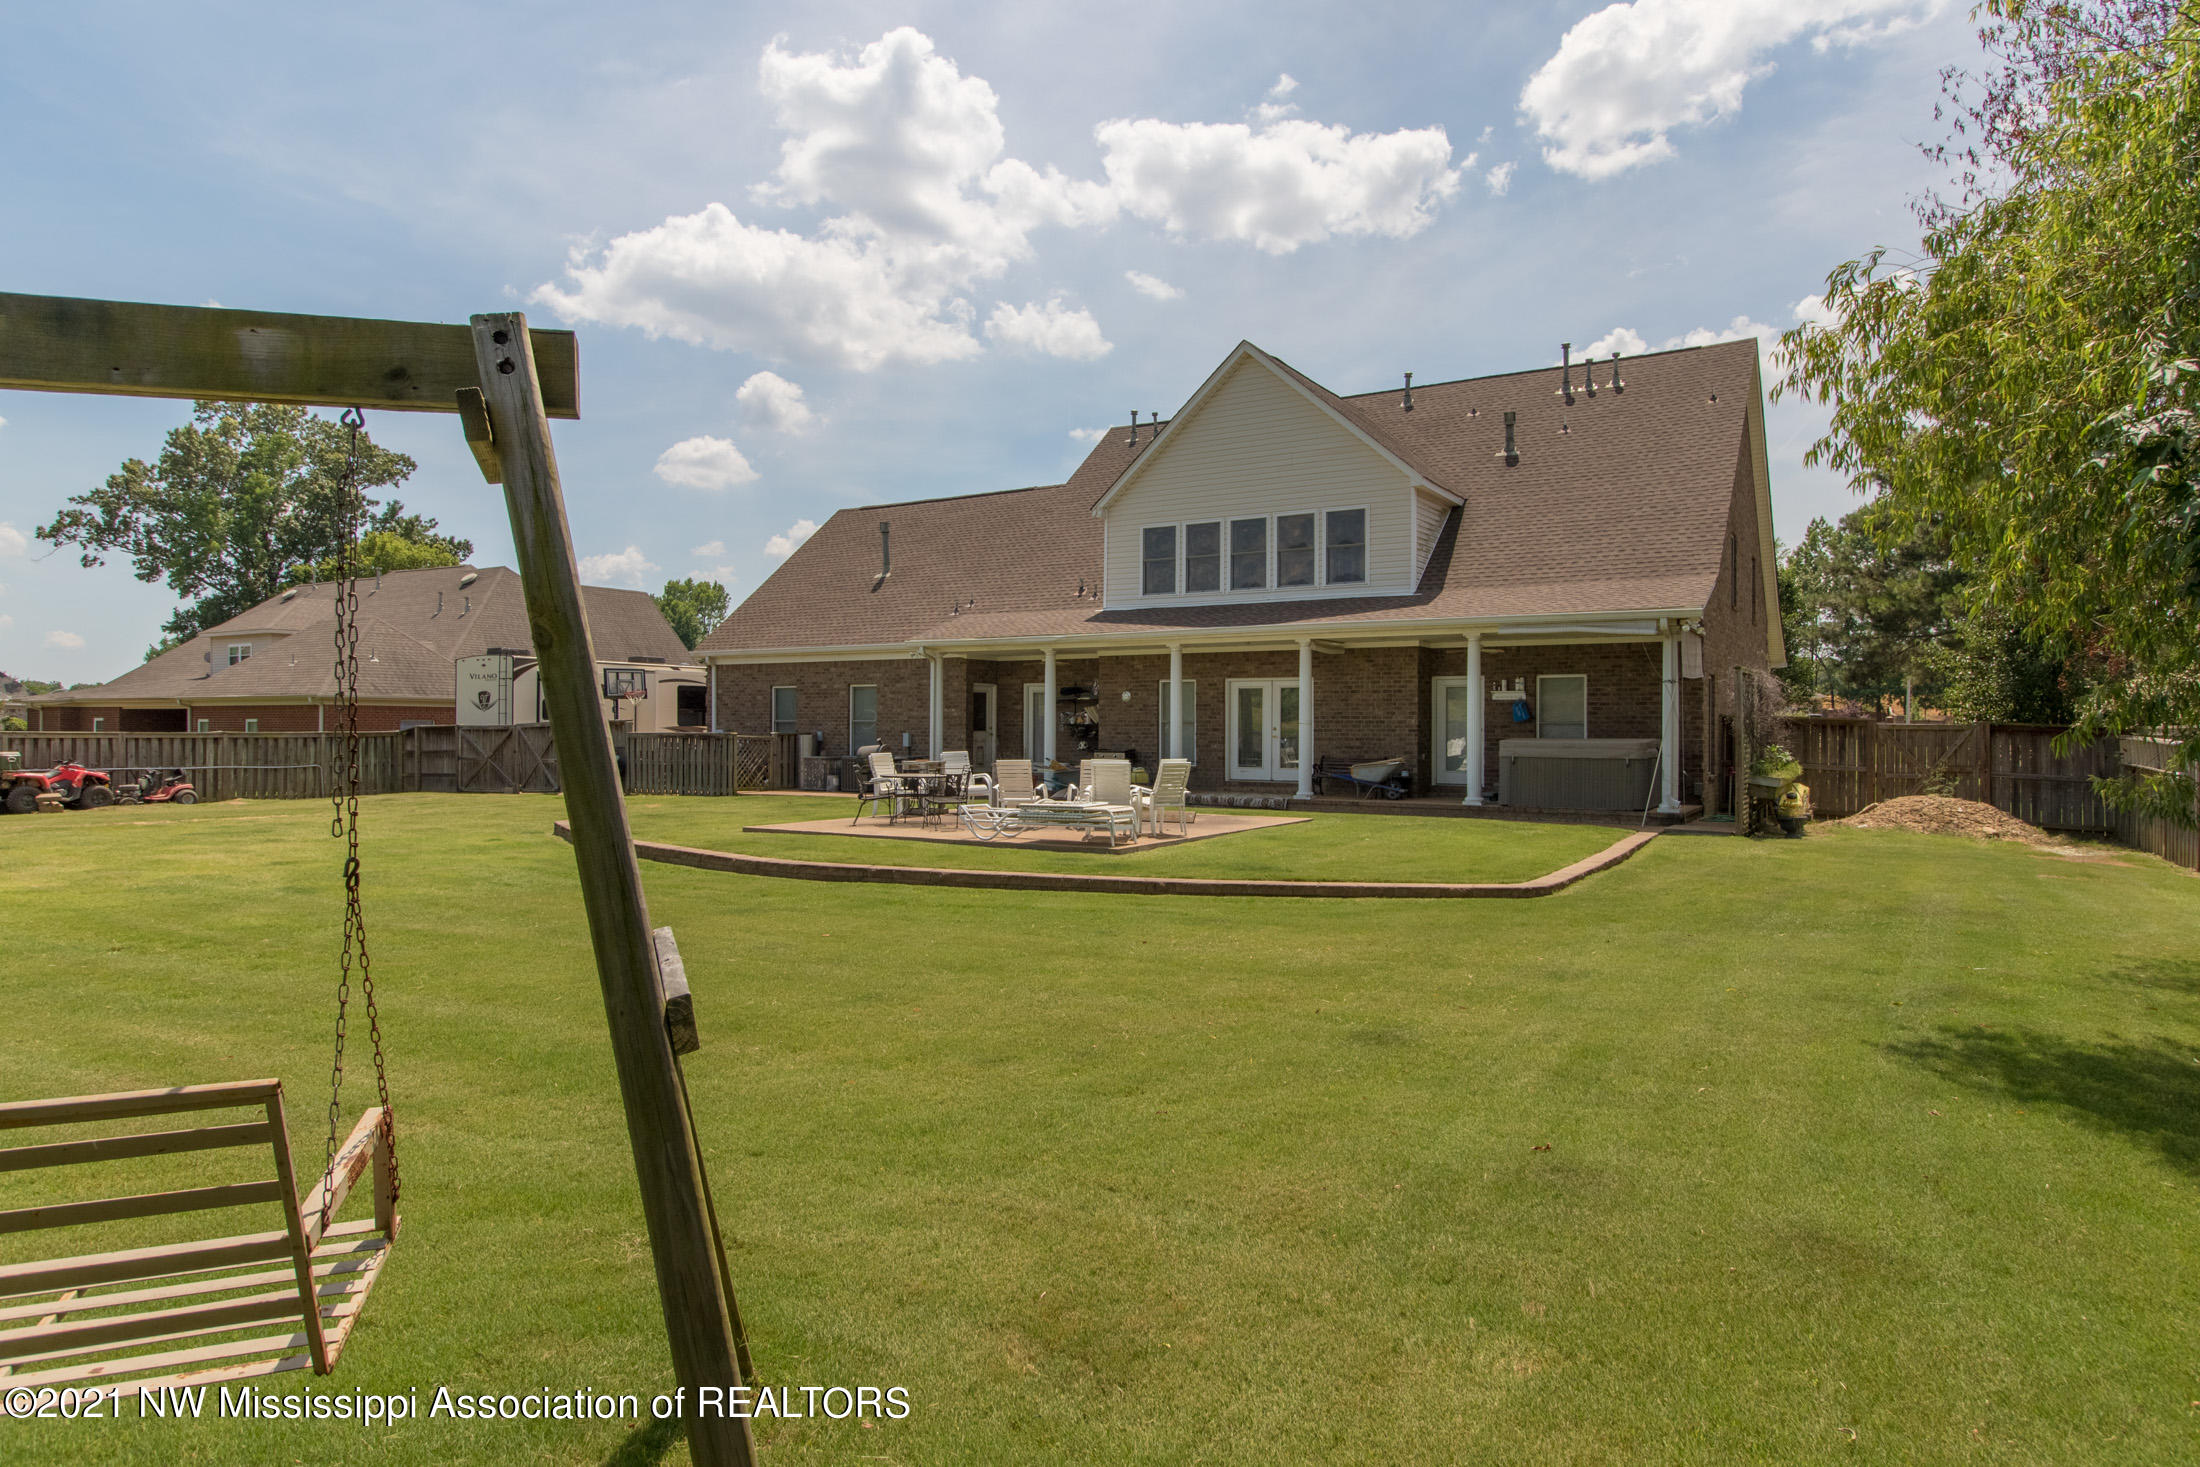 41-5294 Meadow Point